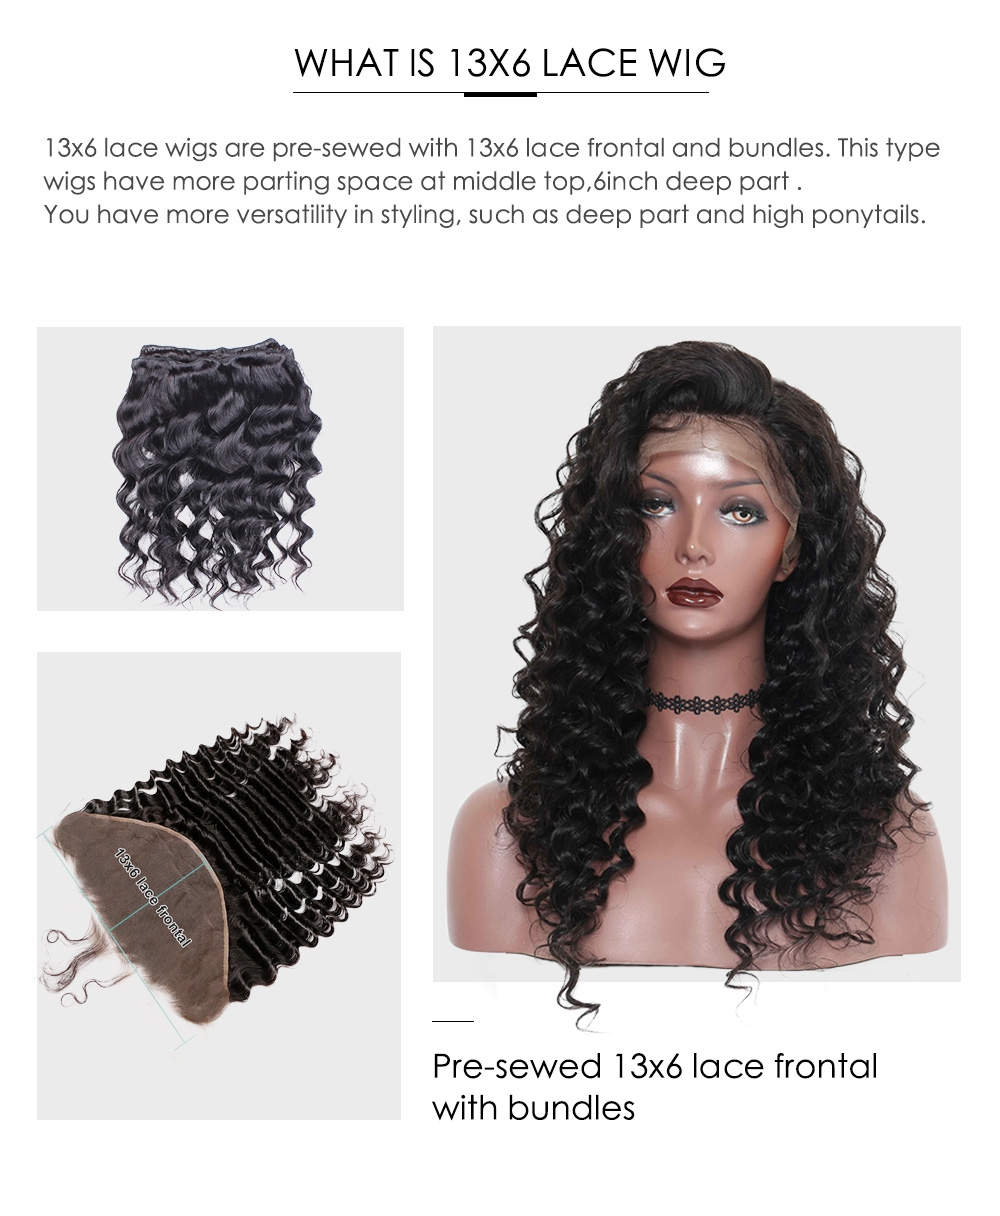 what is 13x6 lace wig